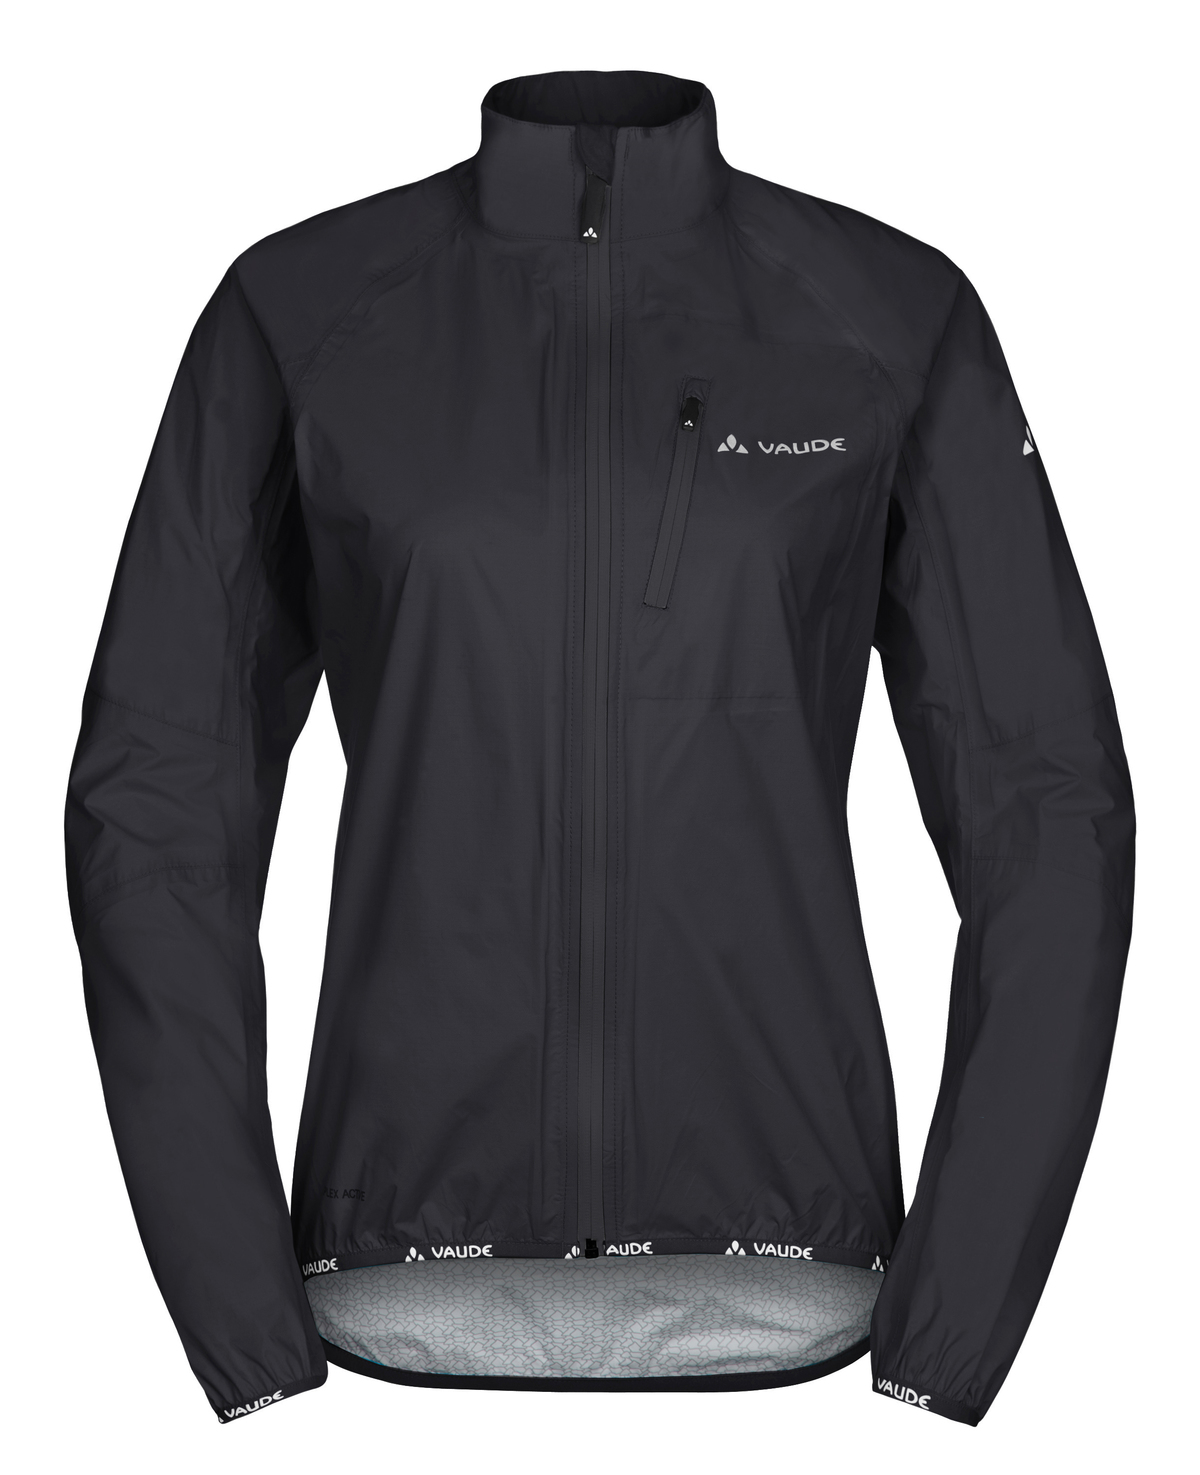 VAUDE Women´s Drop Jacket III black Größe 34 - schneider-sports